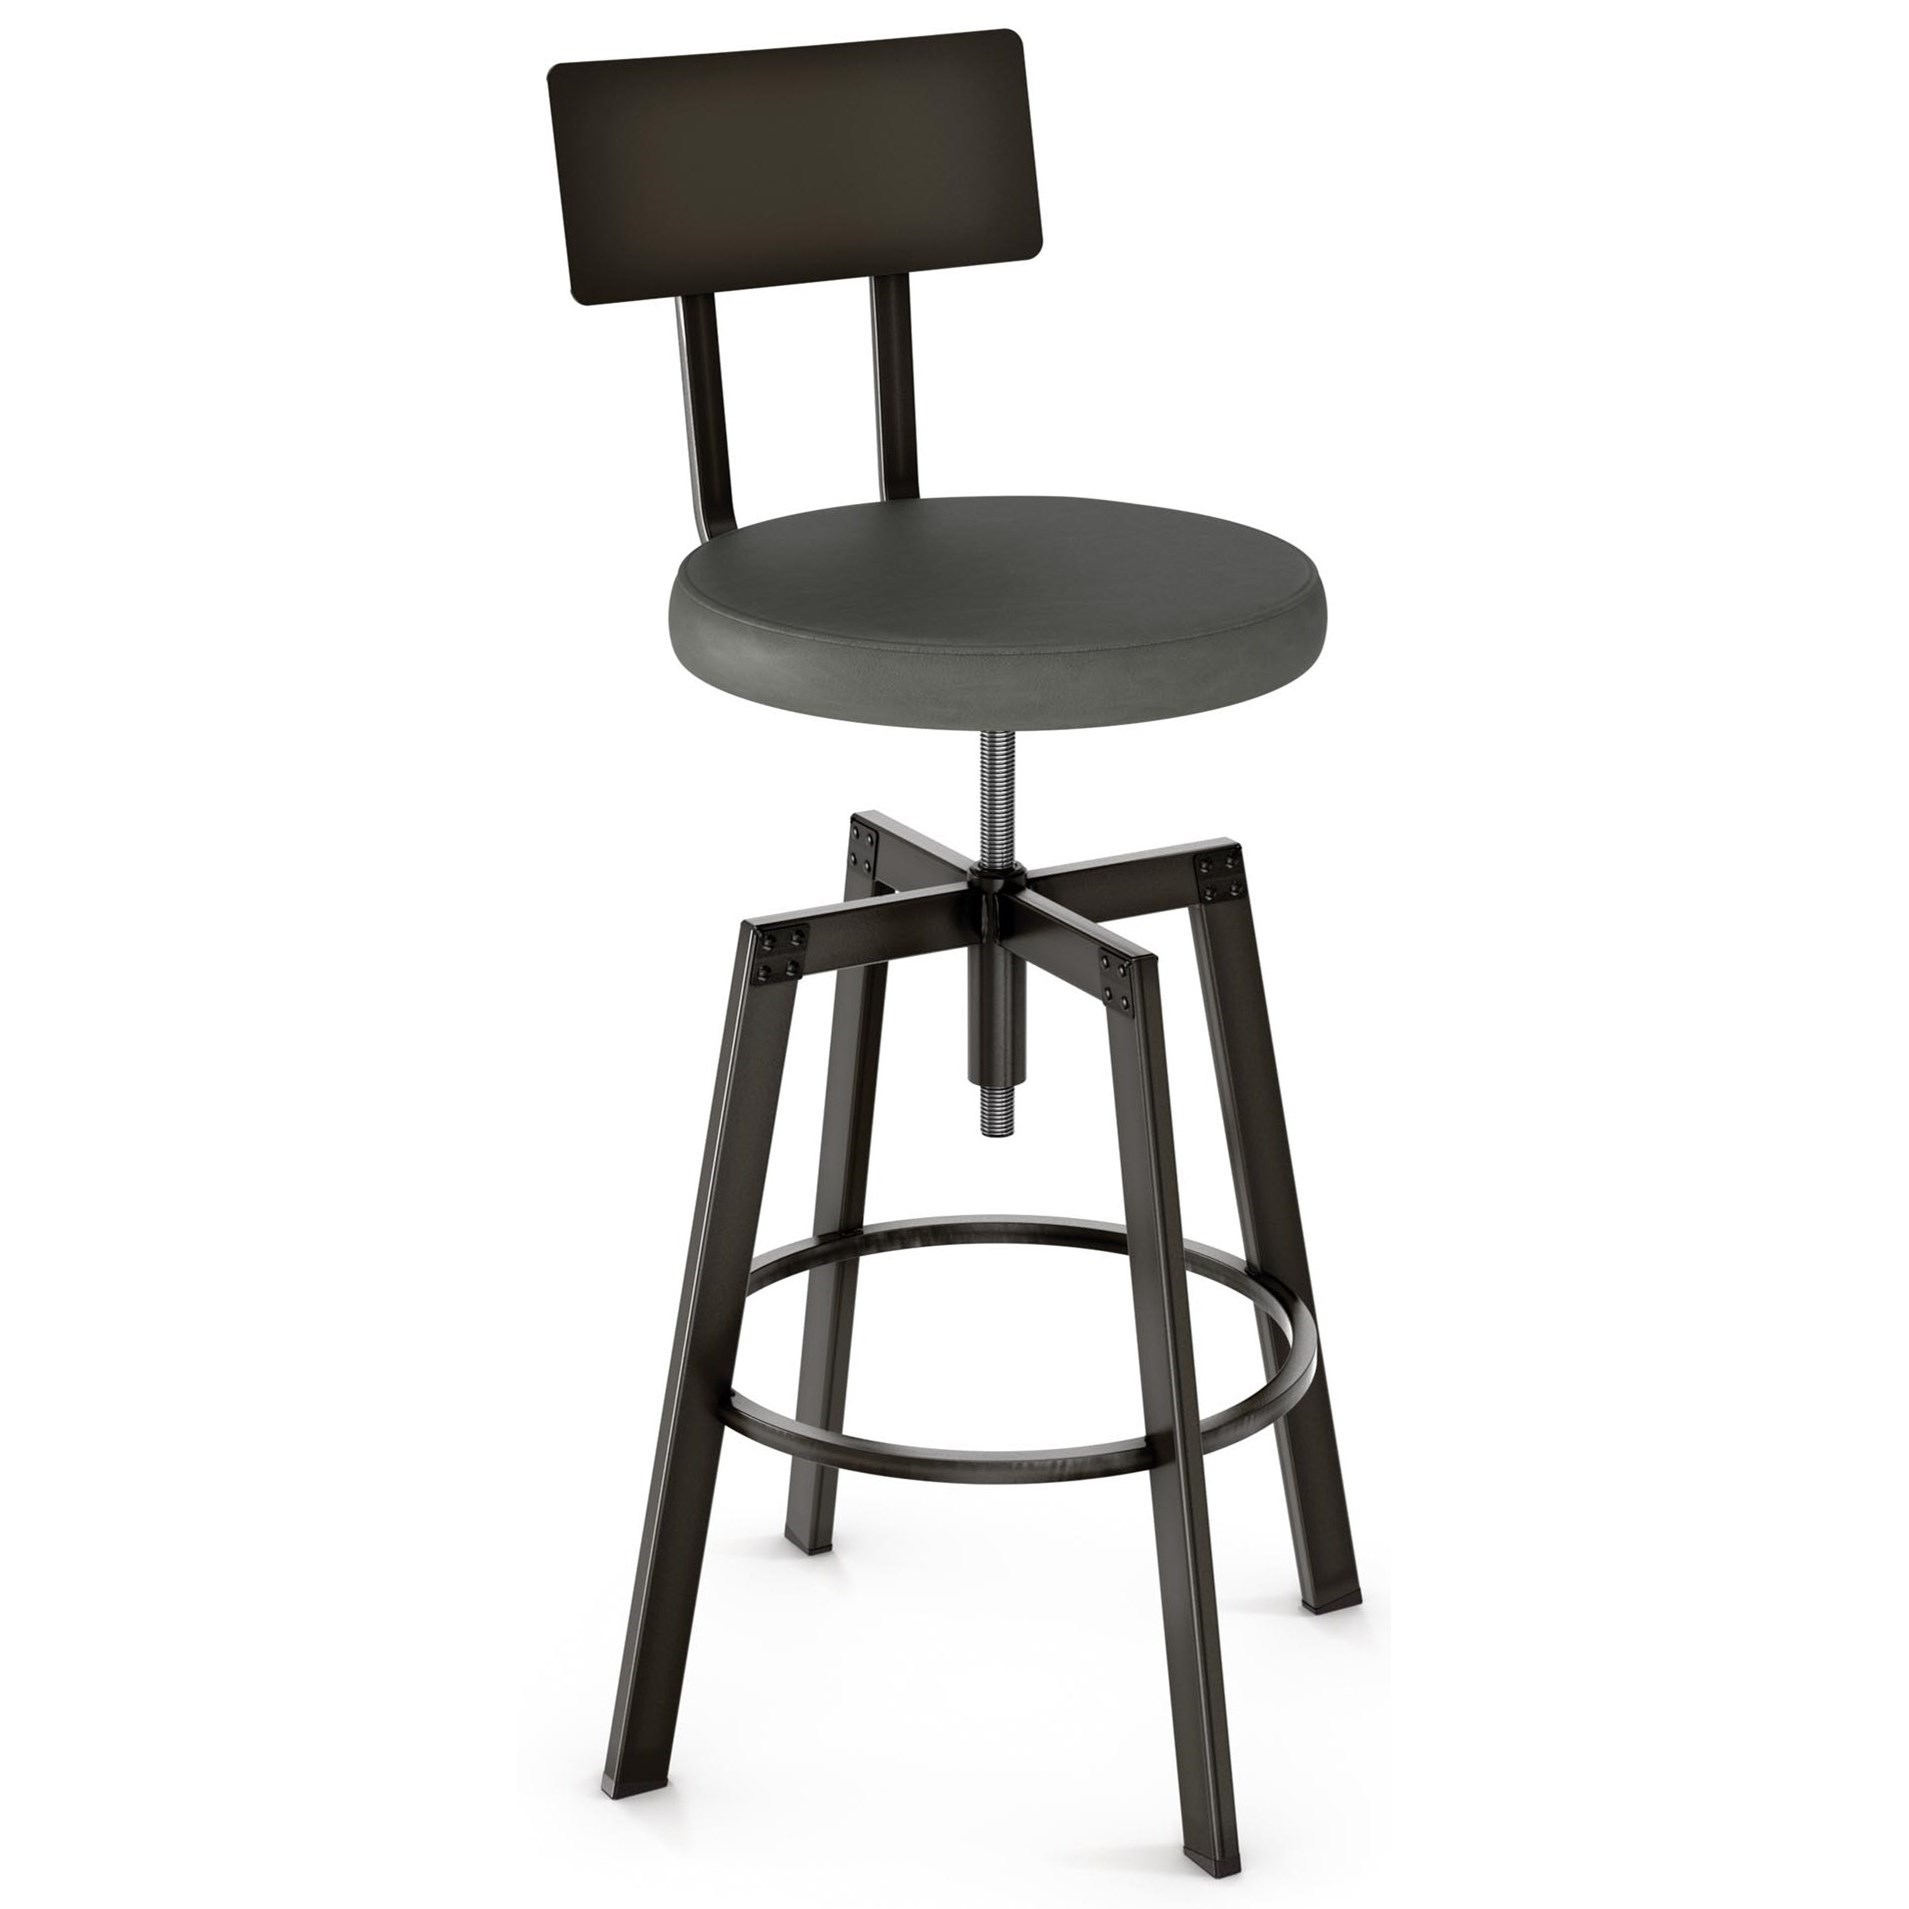 Industrial Architect Screw Stool with Cushion Seat by Amisco at Upper Room Home Furnishings